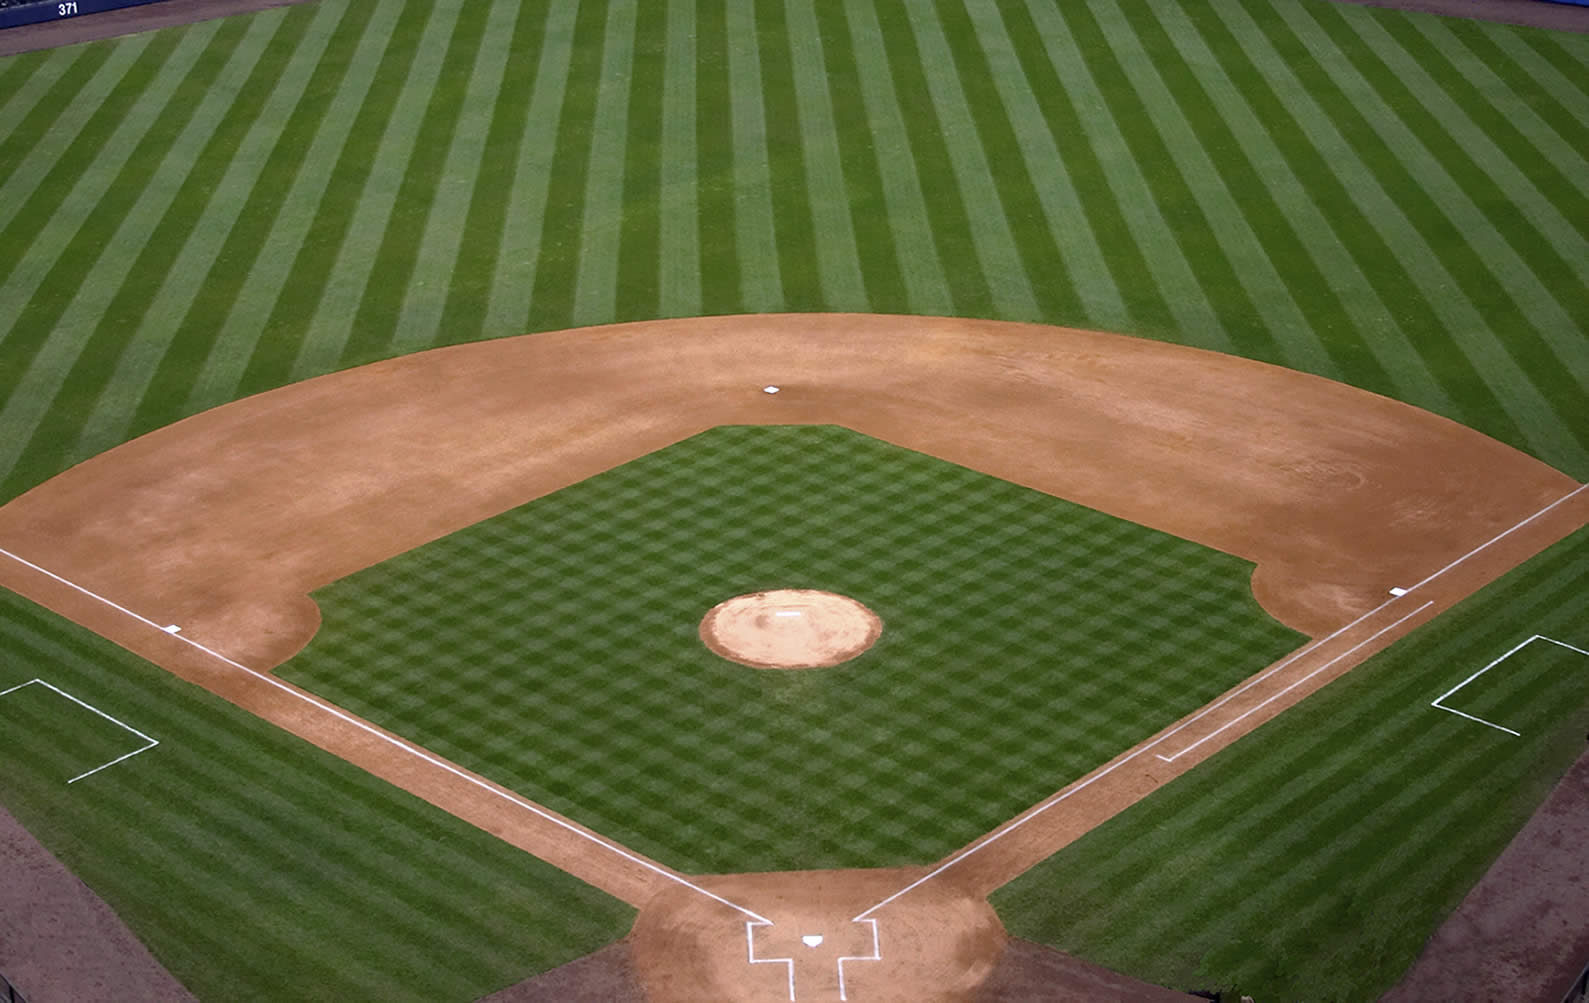 Wallpapers For Baseball Field Background High Resolution 1589x1003